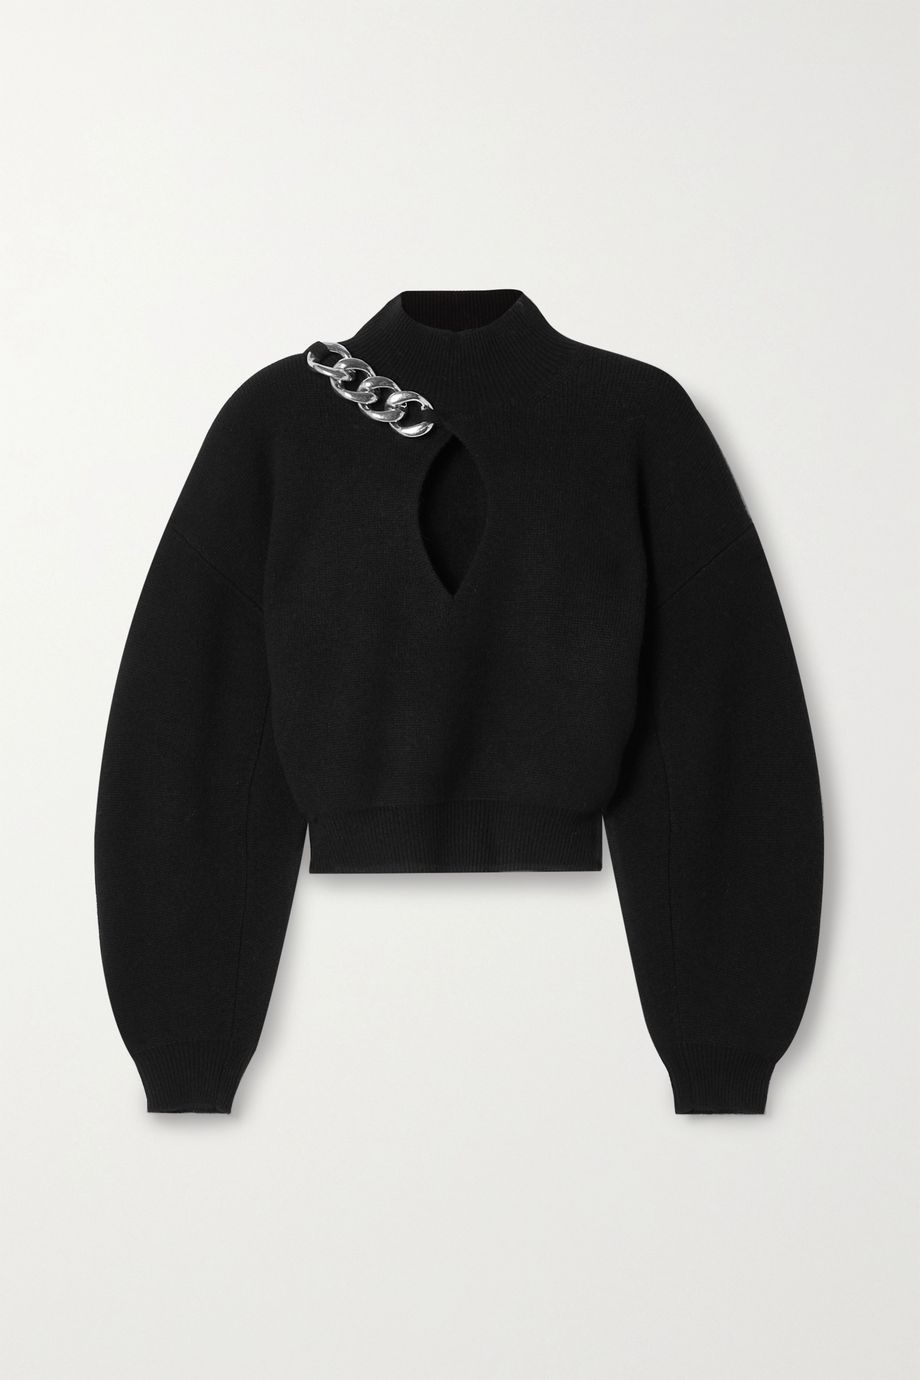 Alexander Wang Cropped chain-detailed cutout wool-blend turtleneck sweater